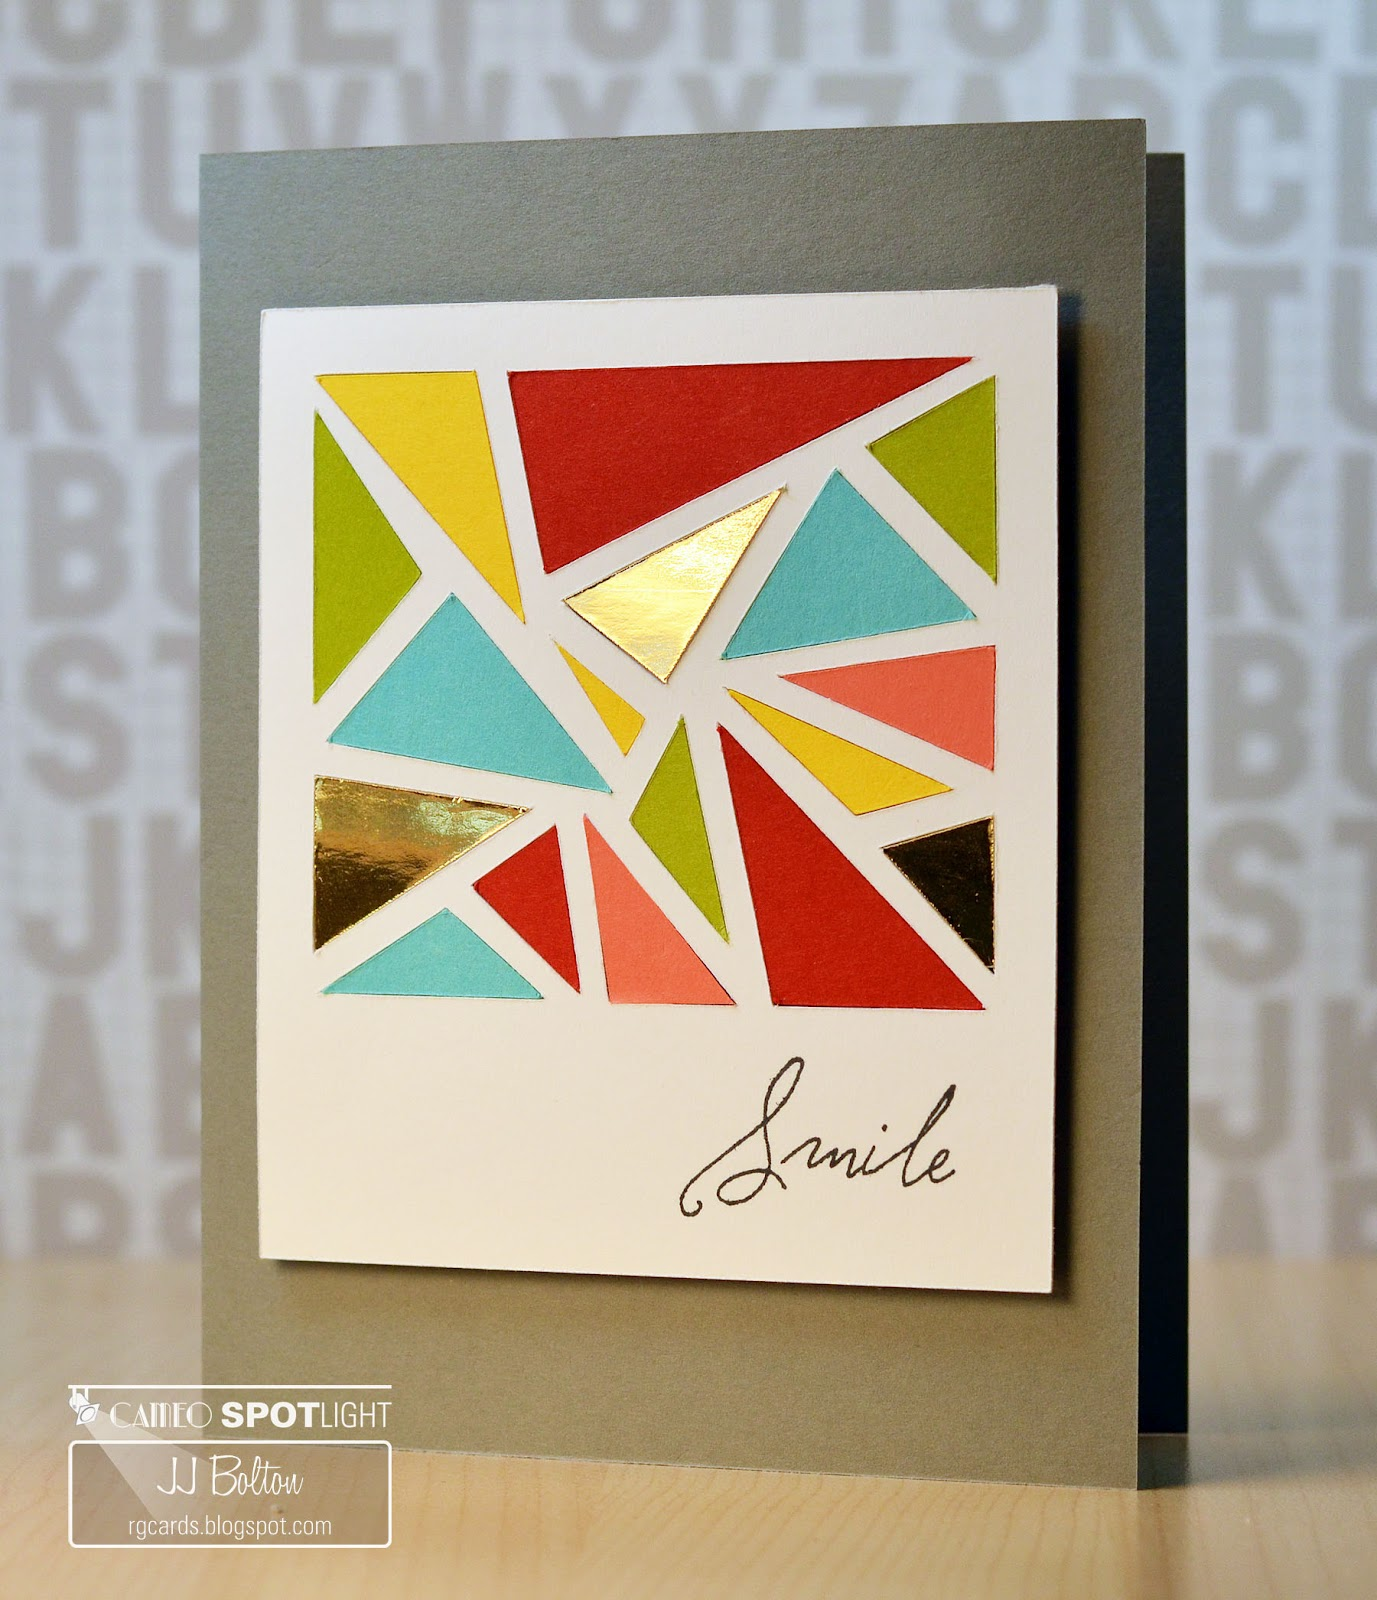 jj bolton {handmade cards}: Cut Files & Templates